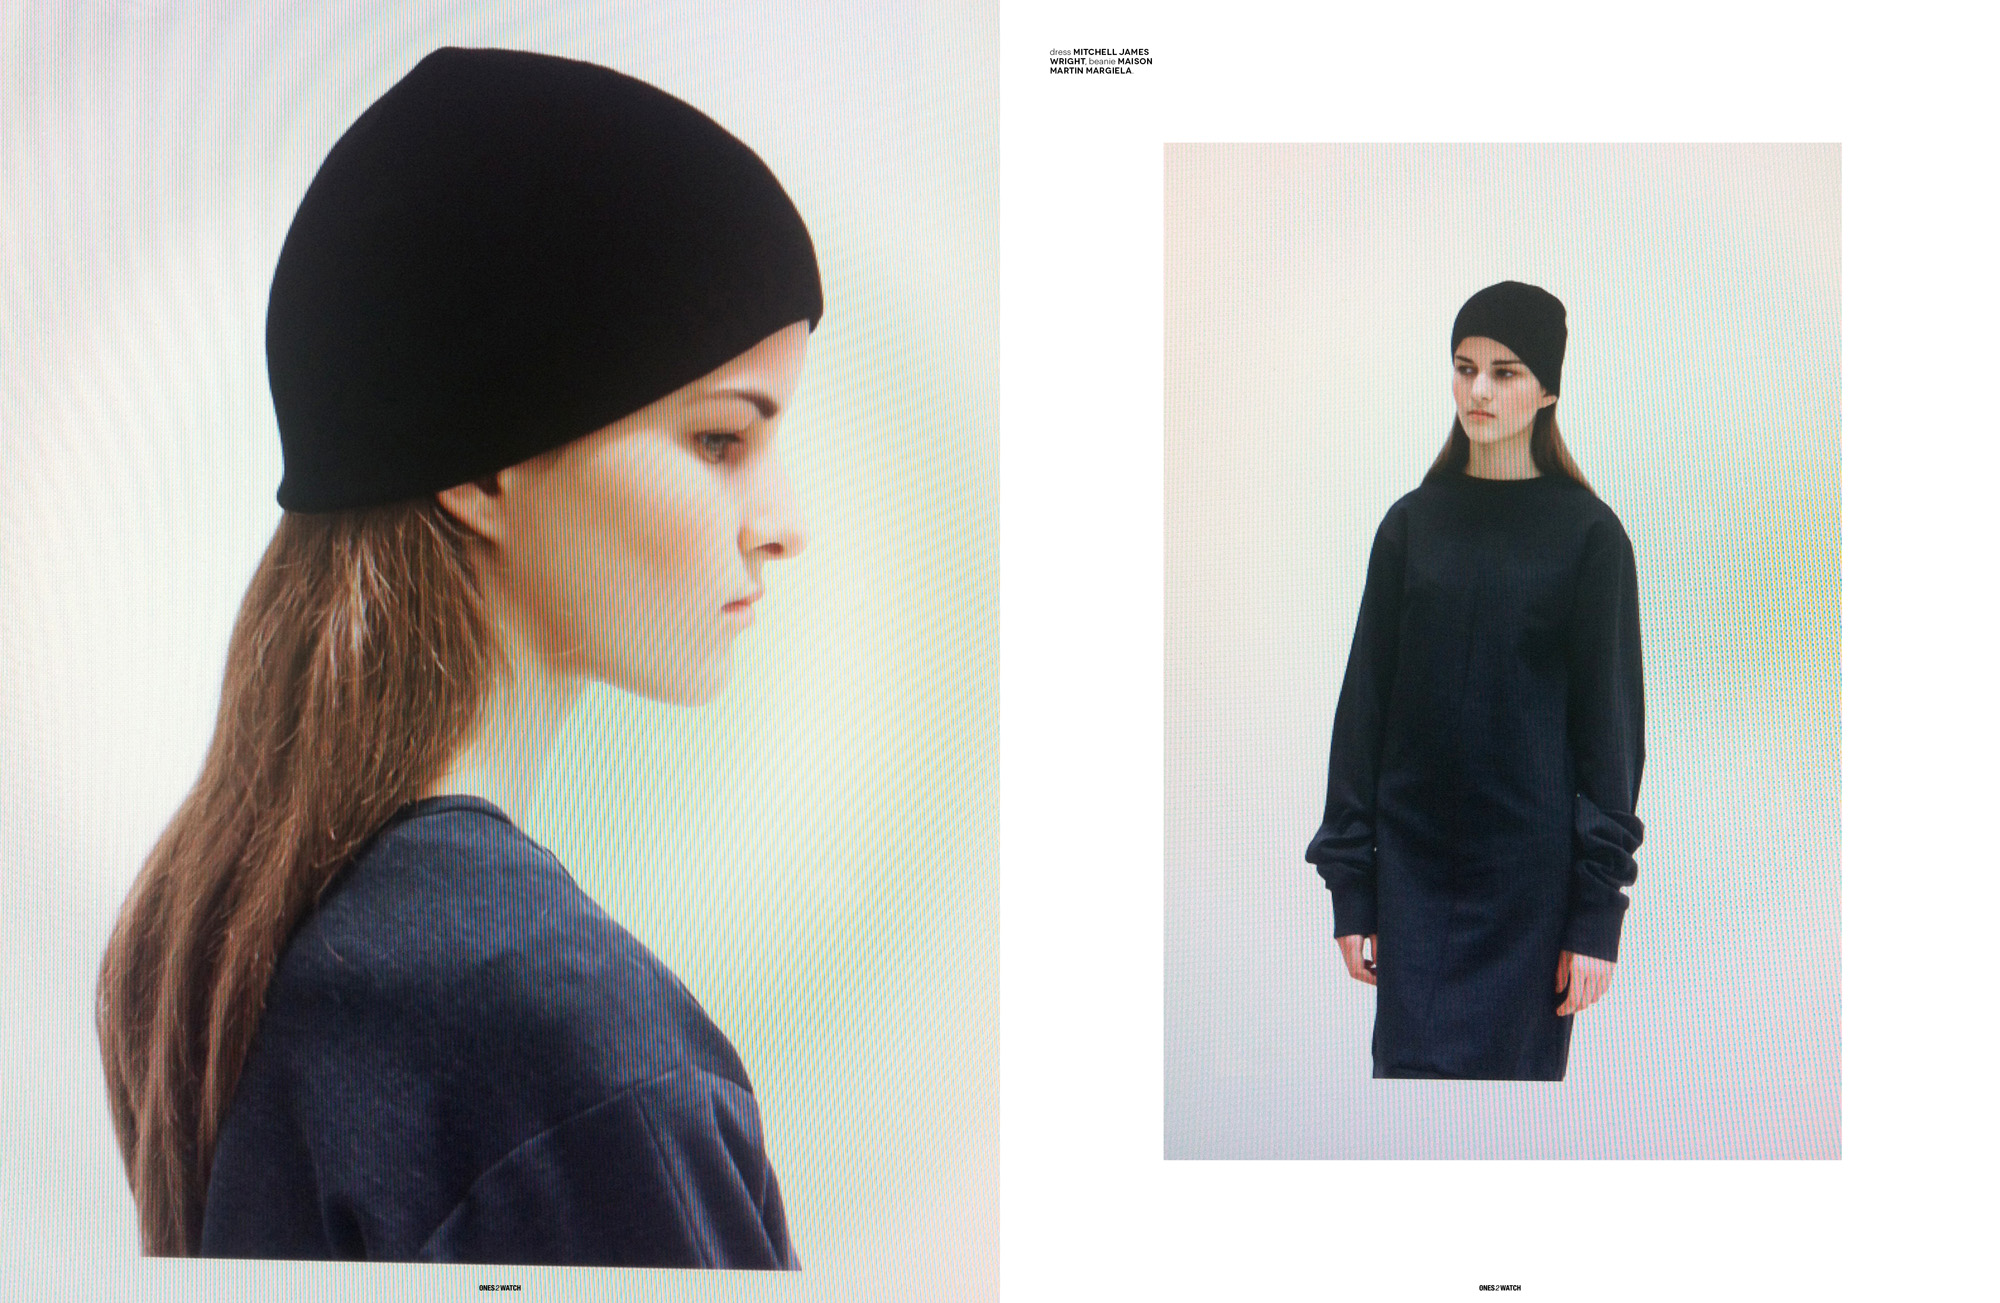 dress Mitchell James Wright, beanie Maison Martin Margiela.